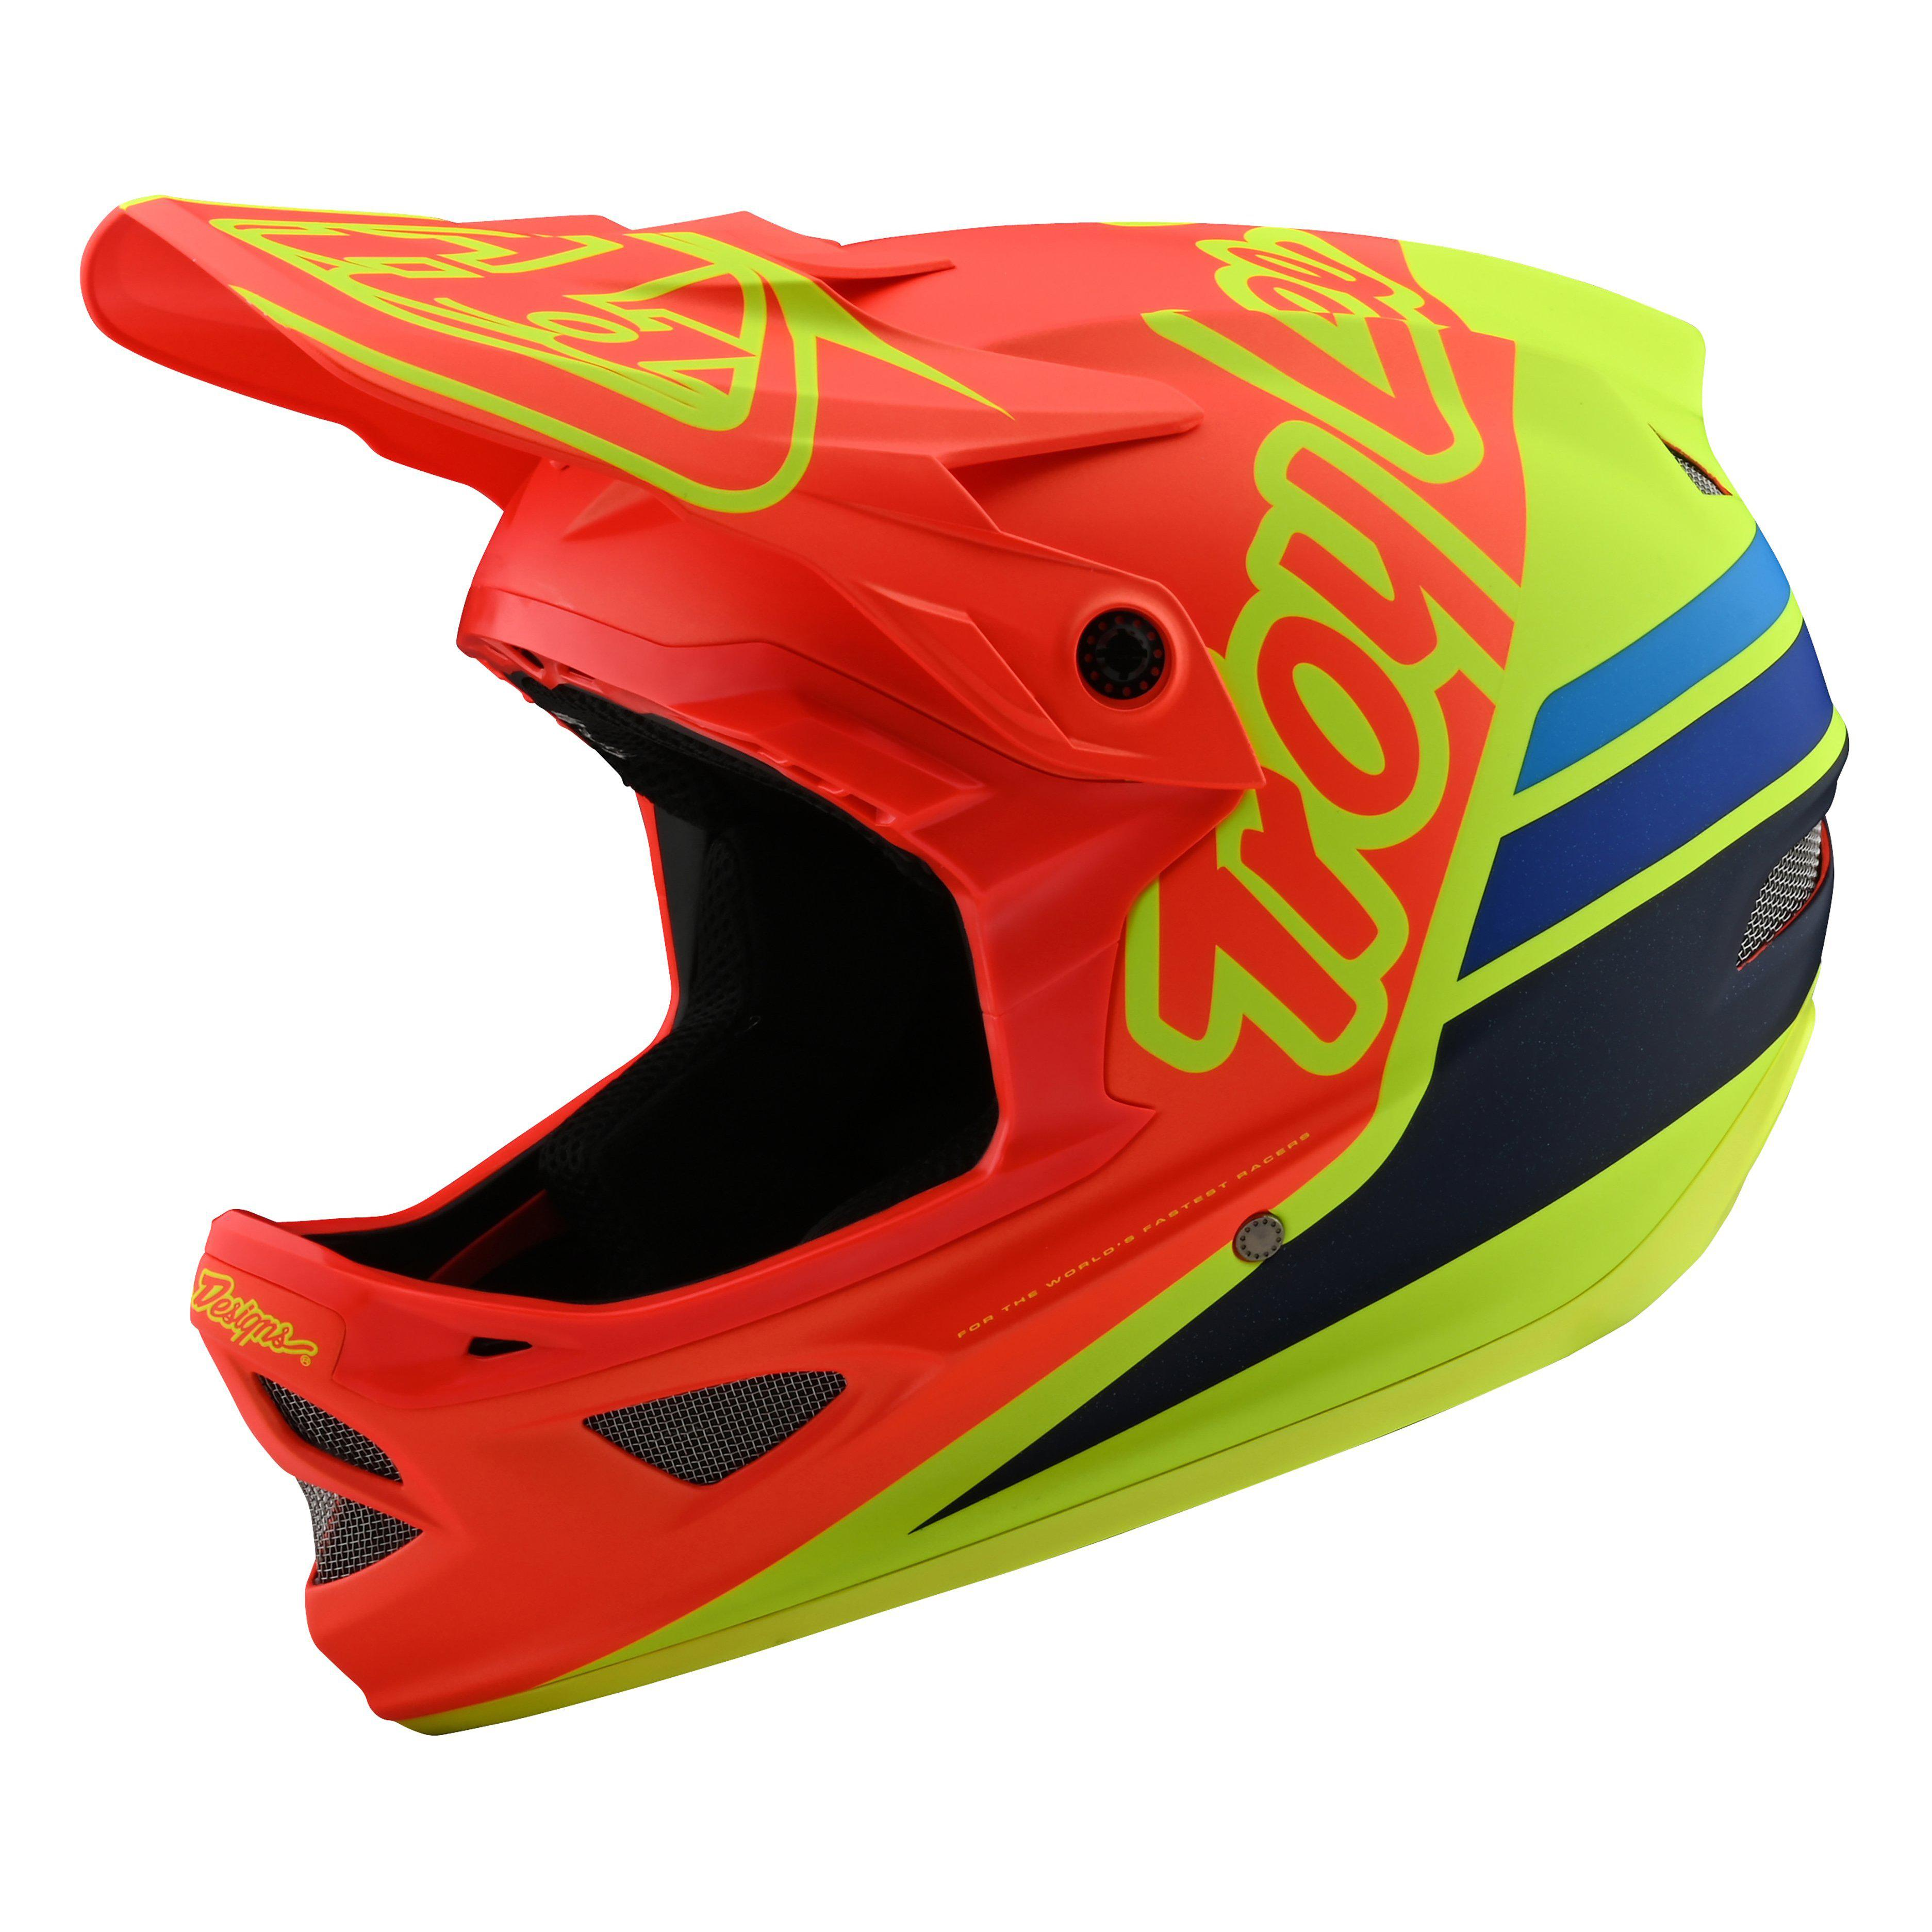 Troy Lee Designs-Troy Lee Designs D3 Fiberlite Helmet-Silhouette Orange/Yellow-XS-TLD198757021-saddleback-elite-performance-cycling